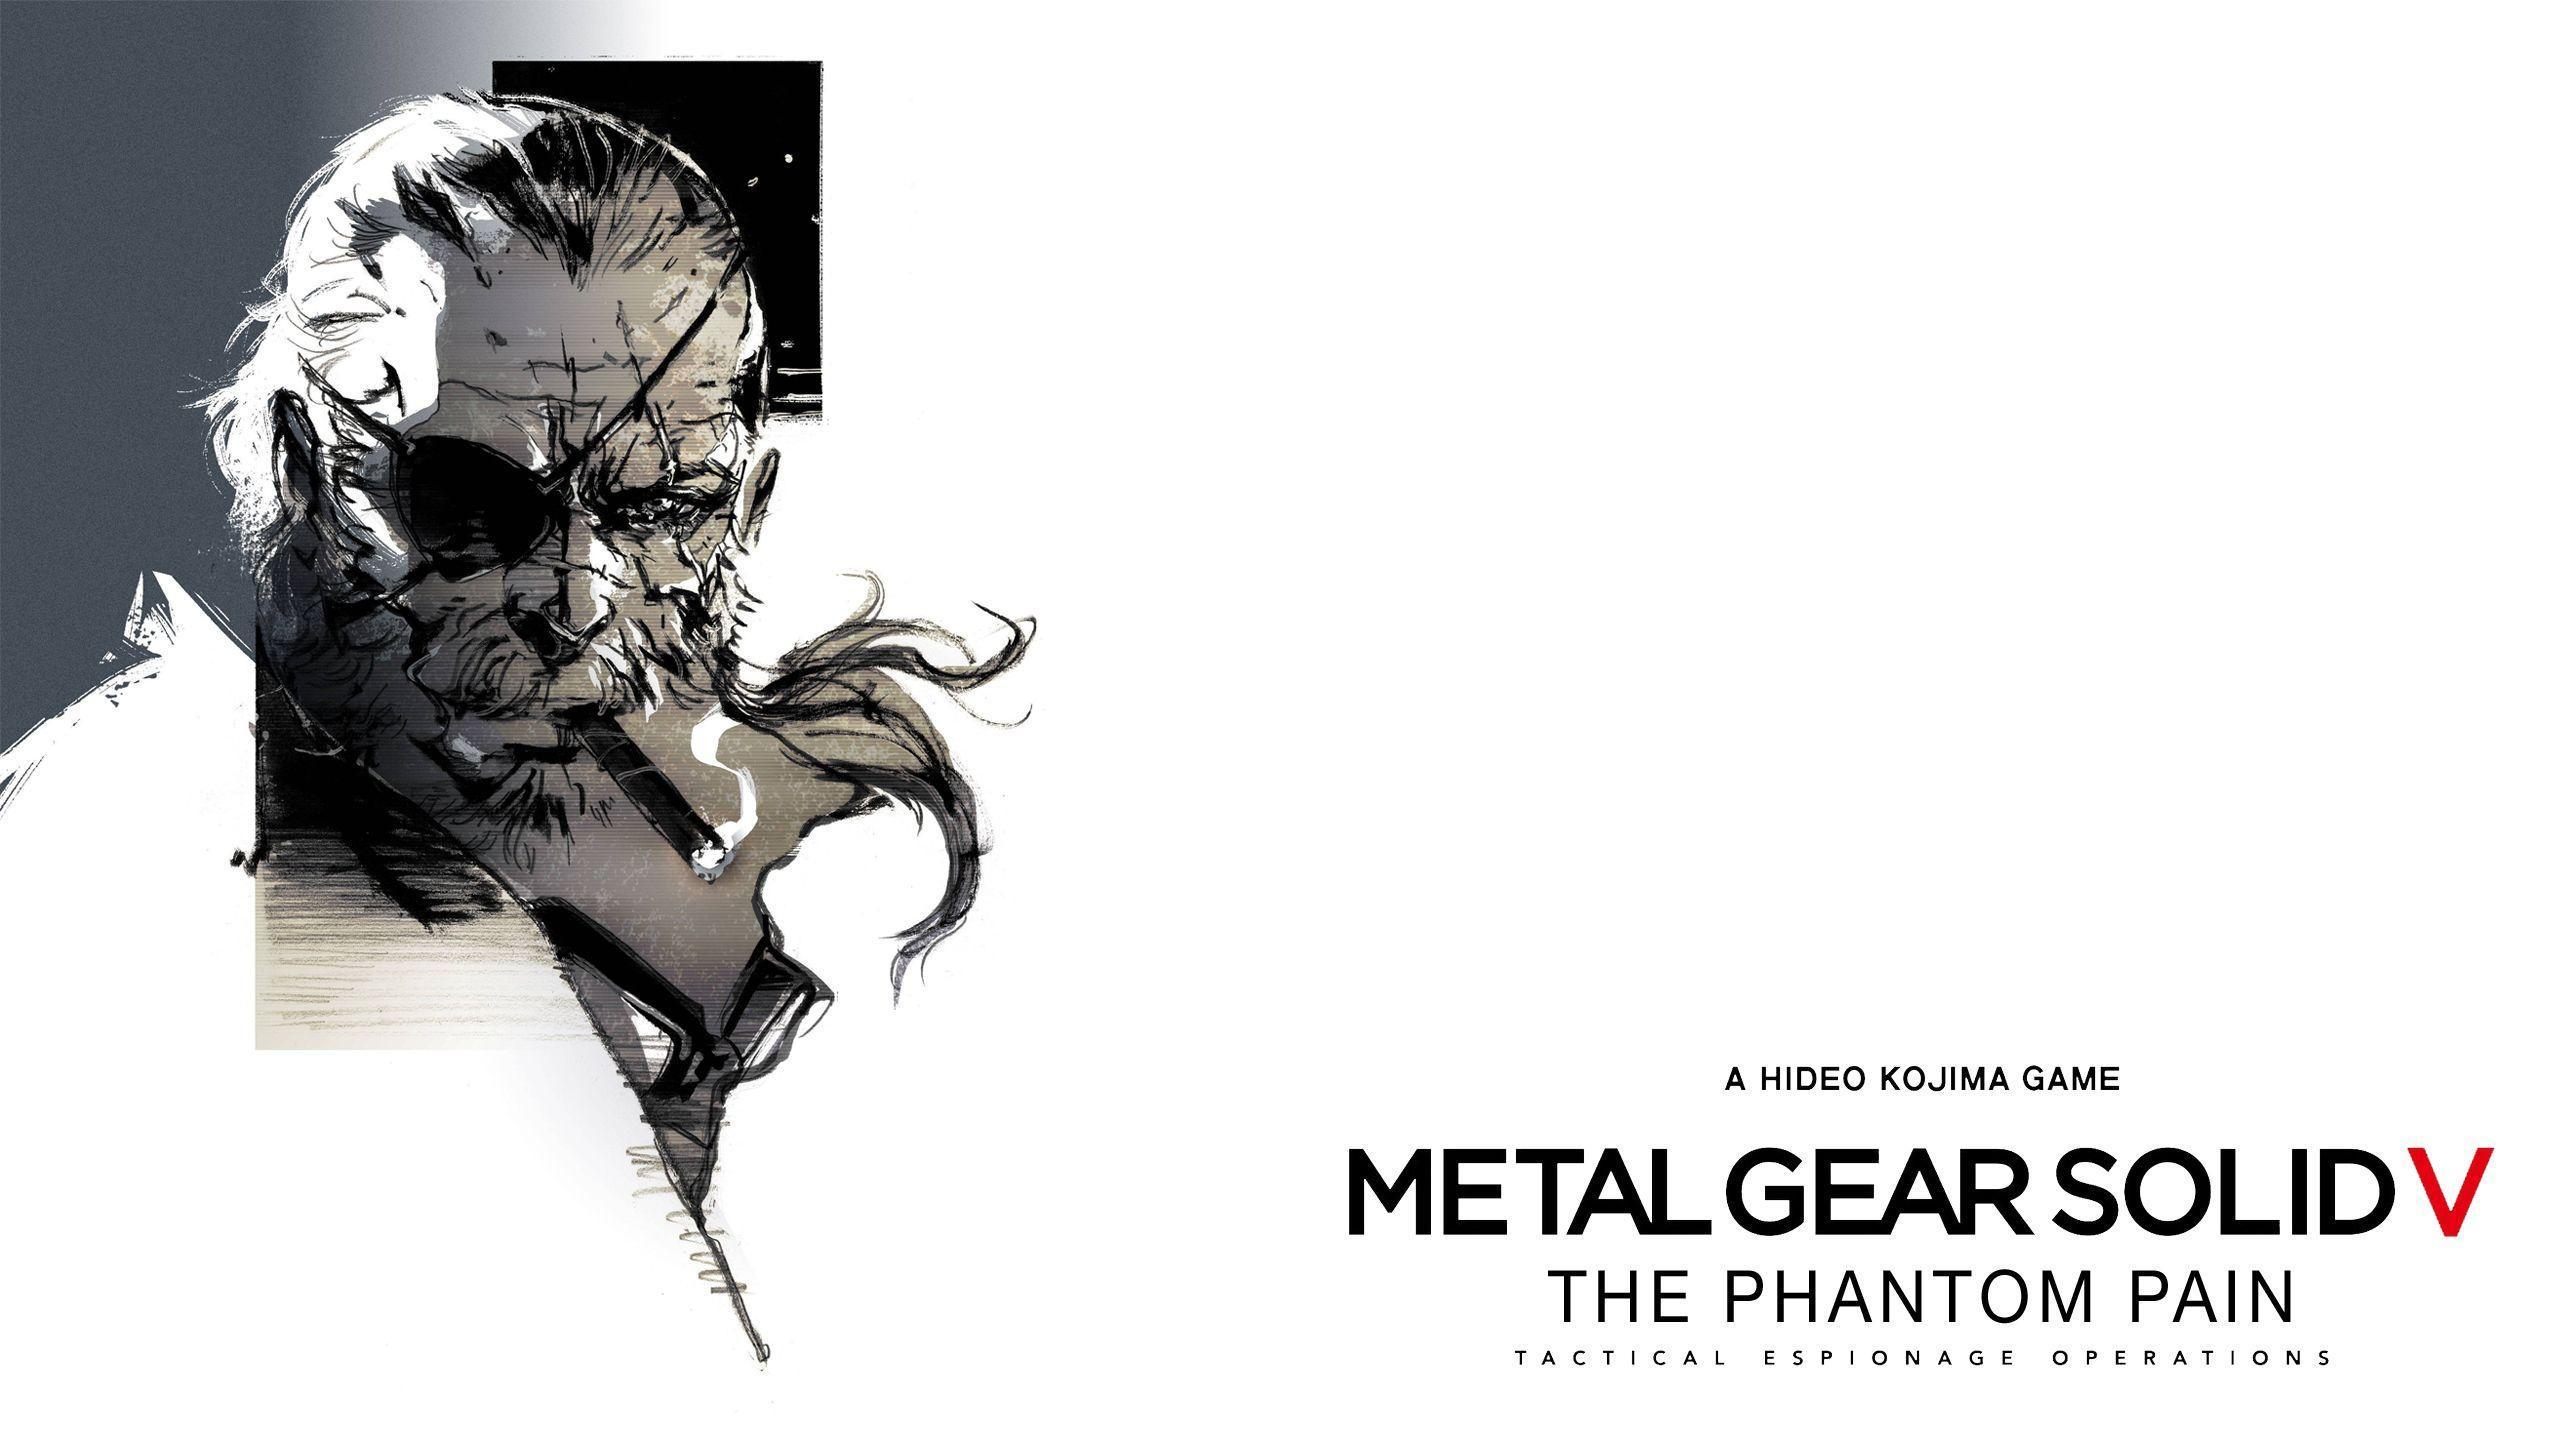 149 Metal Gear Solid V: The Phantom Pain HD Wallpapers